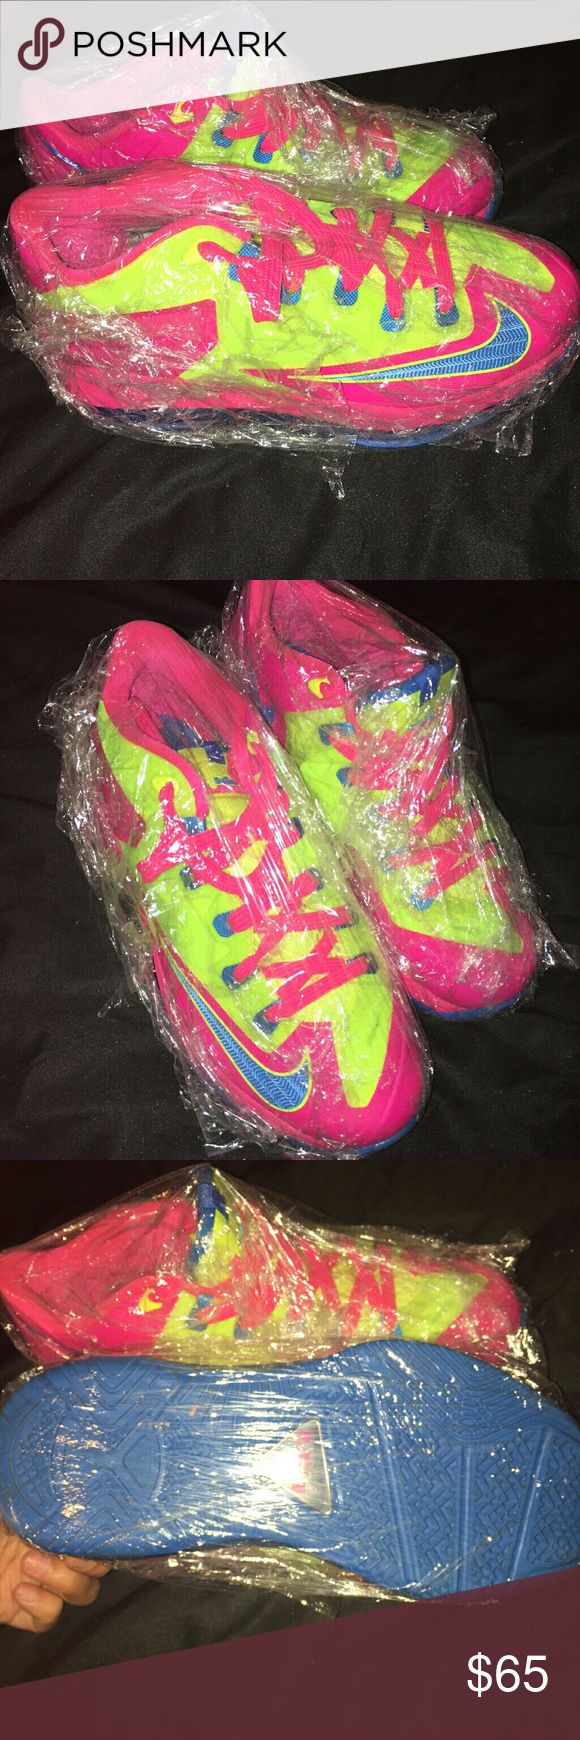 Neon Pink Lebrons size 5 worn once  still look new No box  100% authentic no low balls Nike Shoes Sneakers